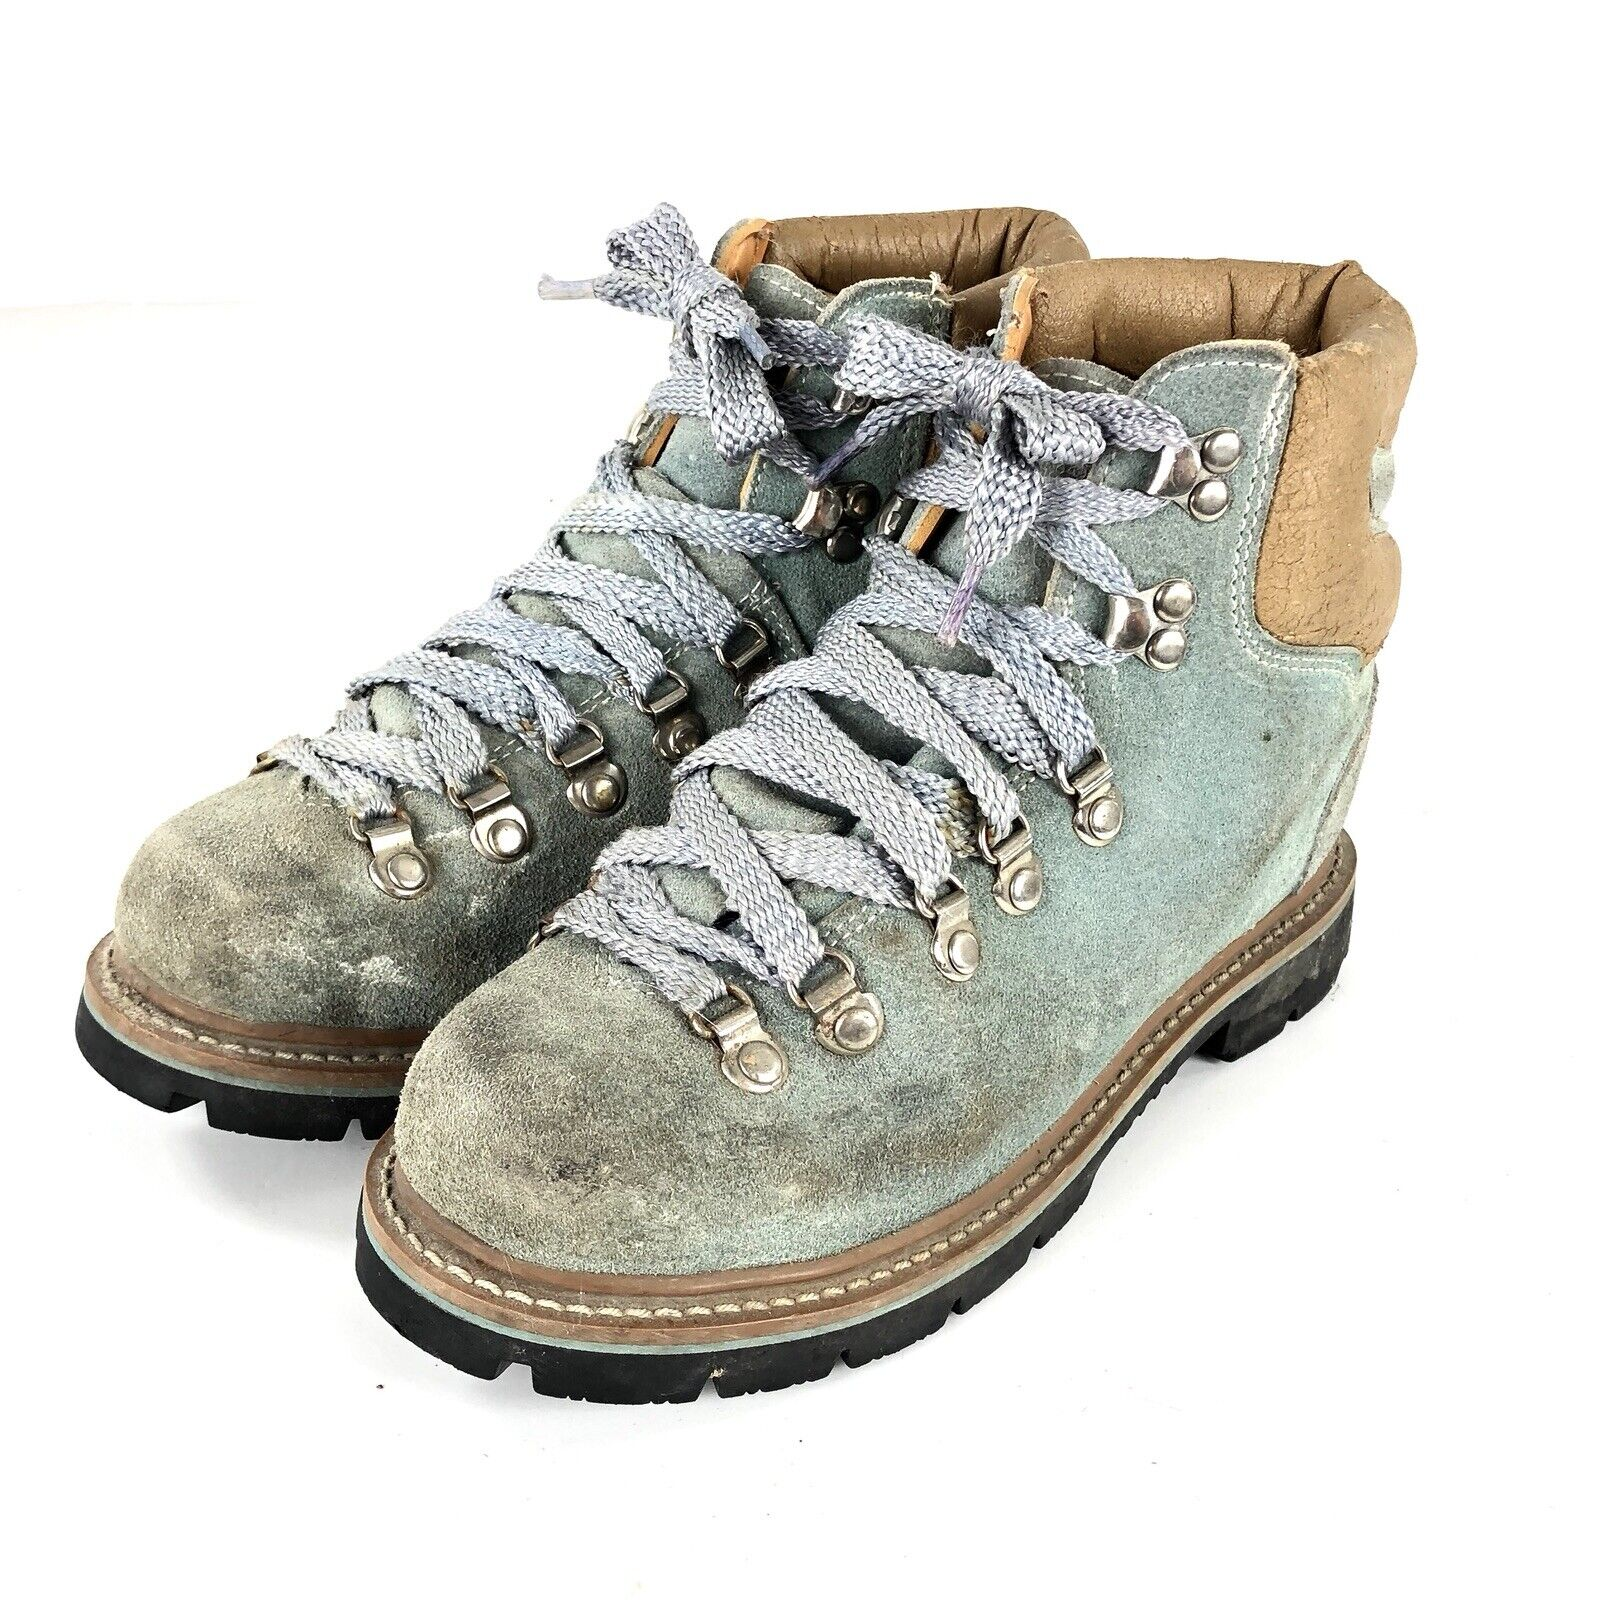 Vintage Coasters Mountaineer Womens bluee Suede Lace up Hiking Ankle Boot Sz 8